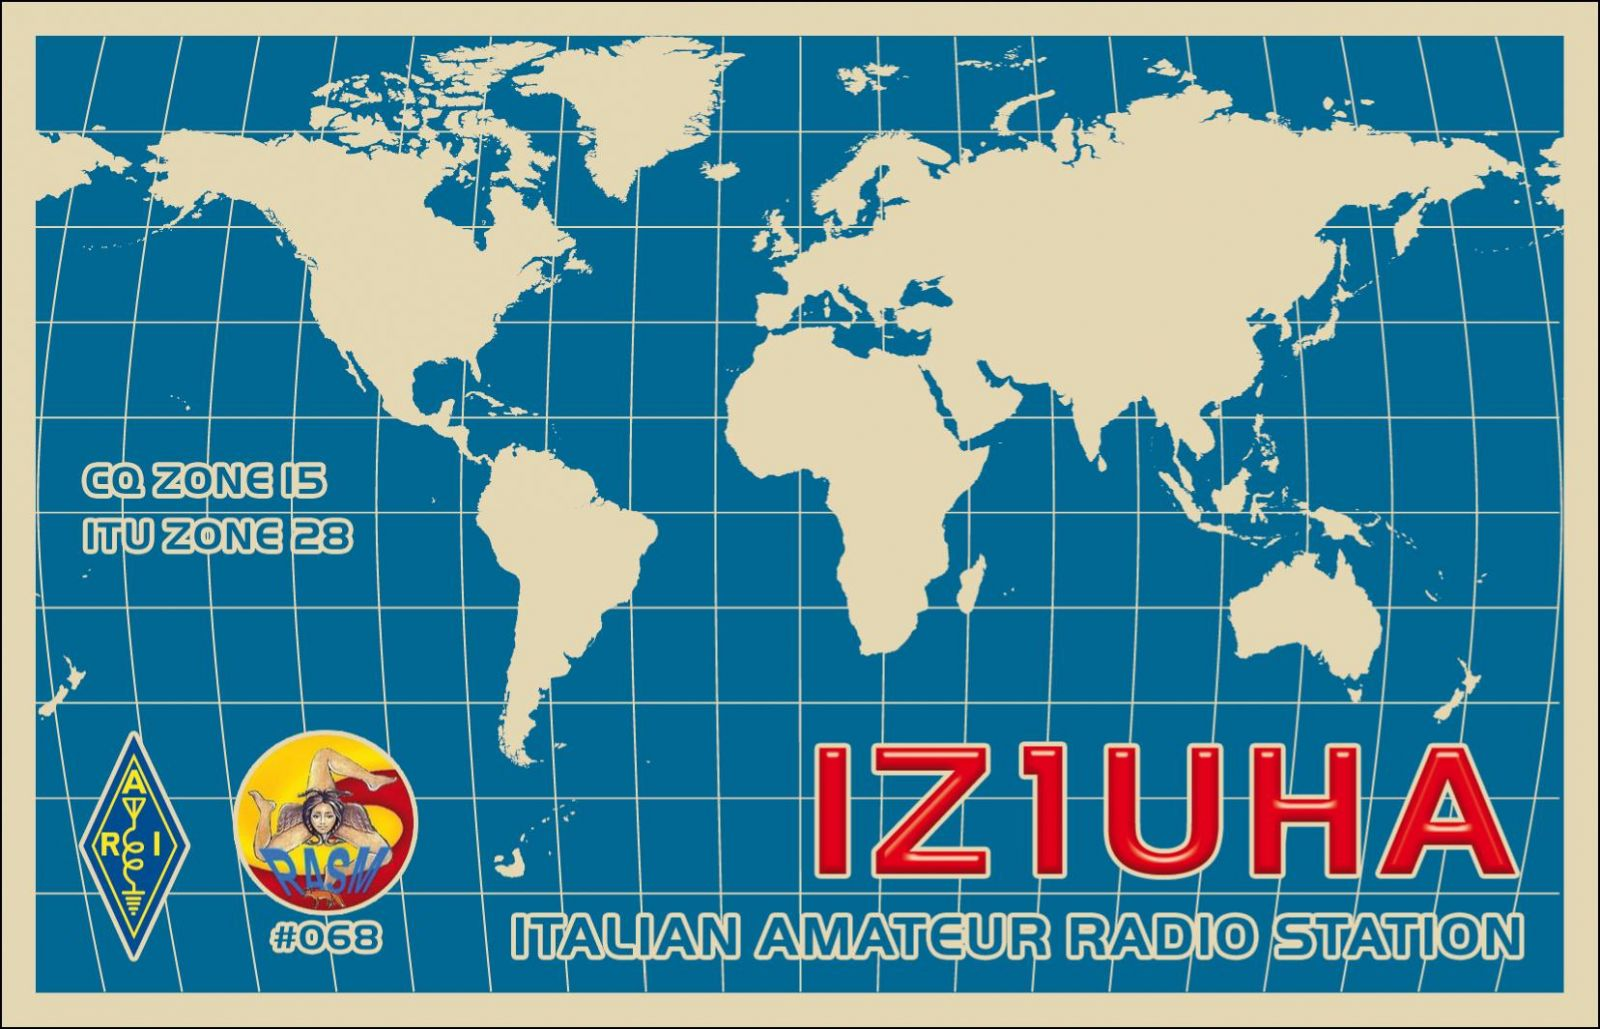 QSL image for IZ1UHA